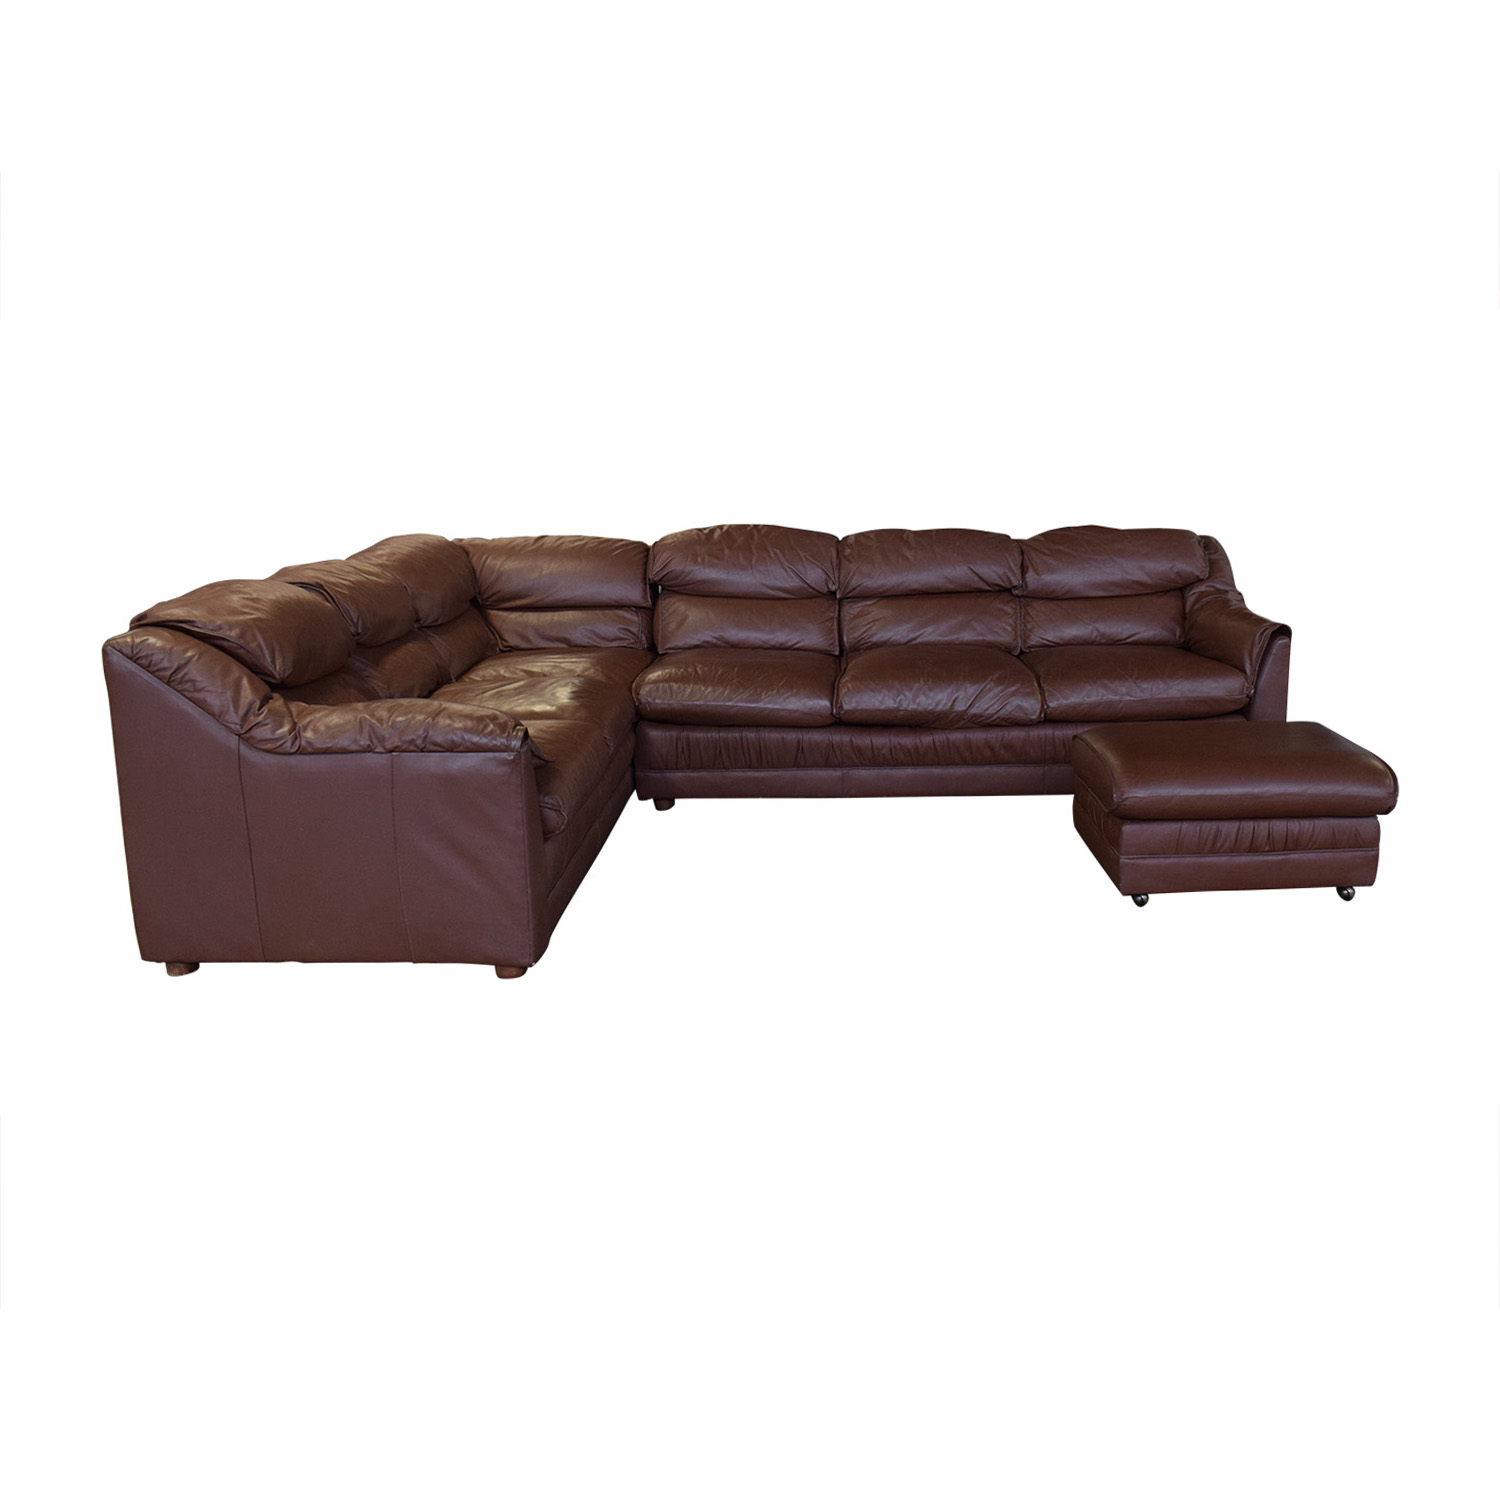 Emerson Leather Emerson Leather Sectional And Ottoman second hand